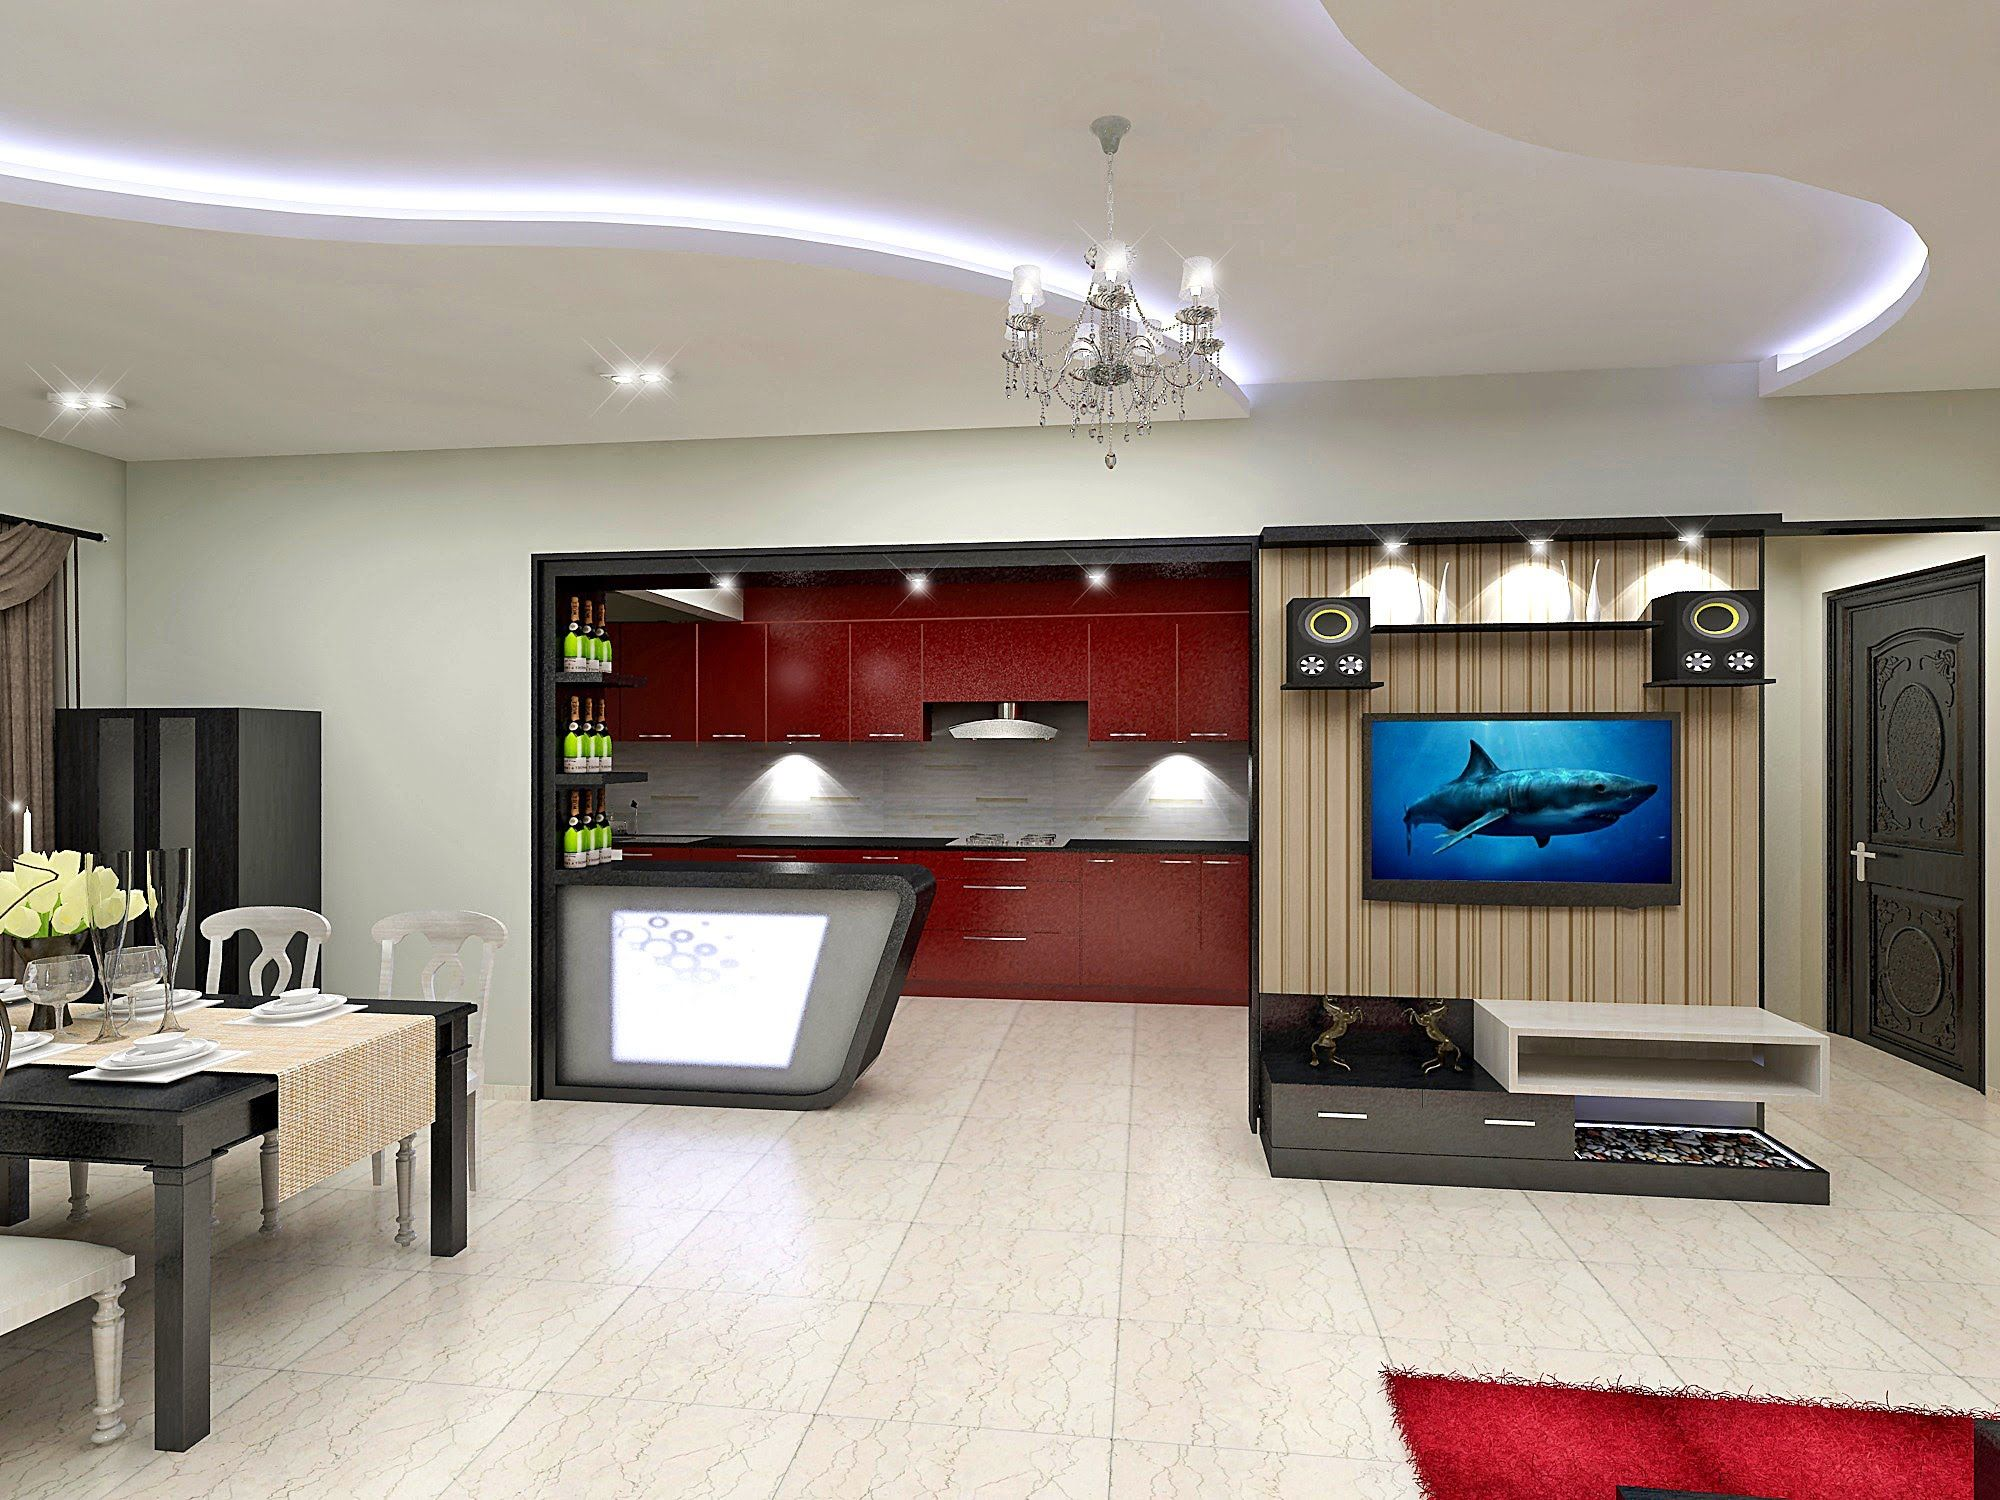 Mr Manna 2bhk Flat Interiors Update 1 Work At Salarpuria Greenage Flat Interior Design Flat Interior Interior Design